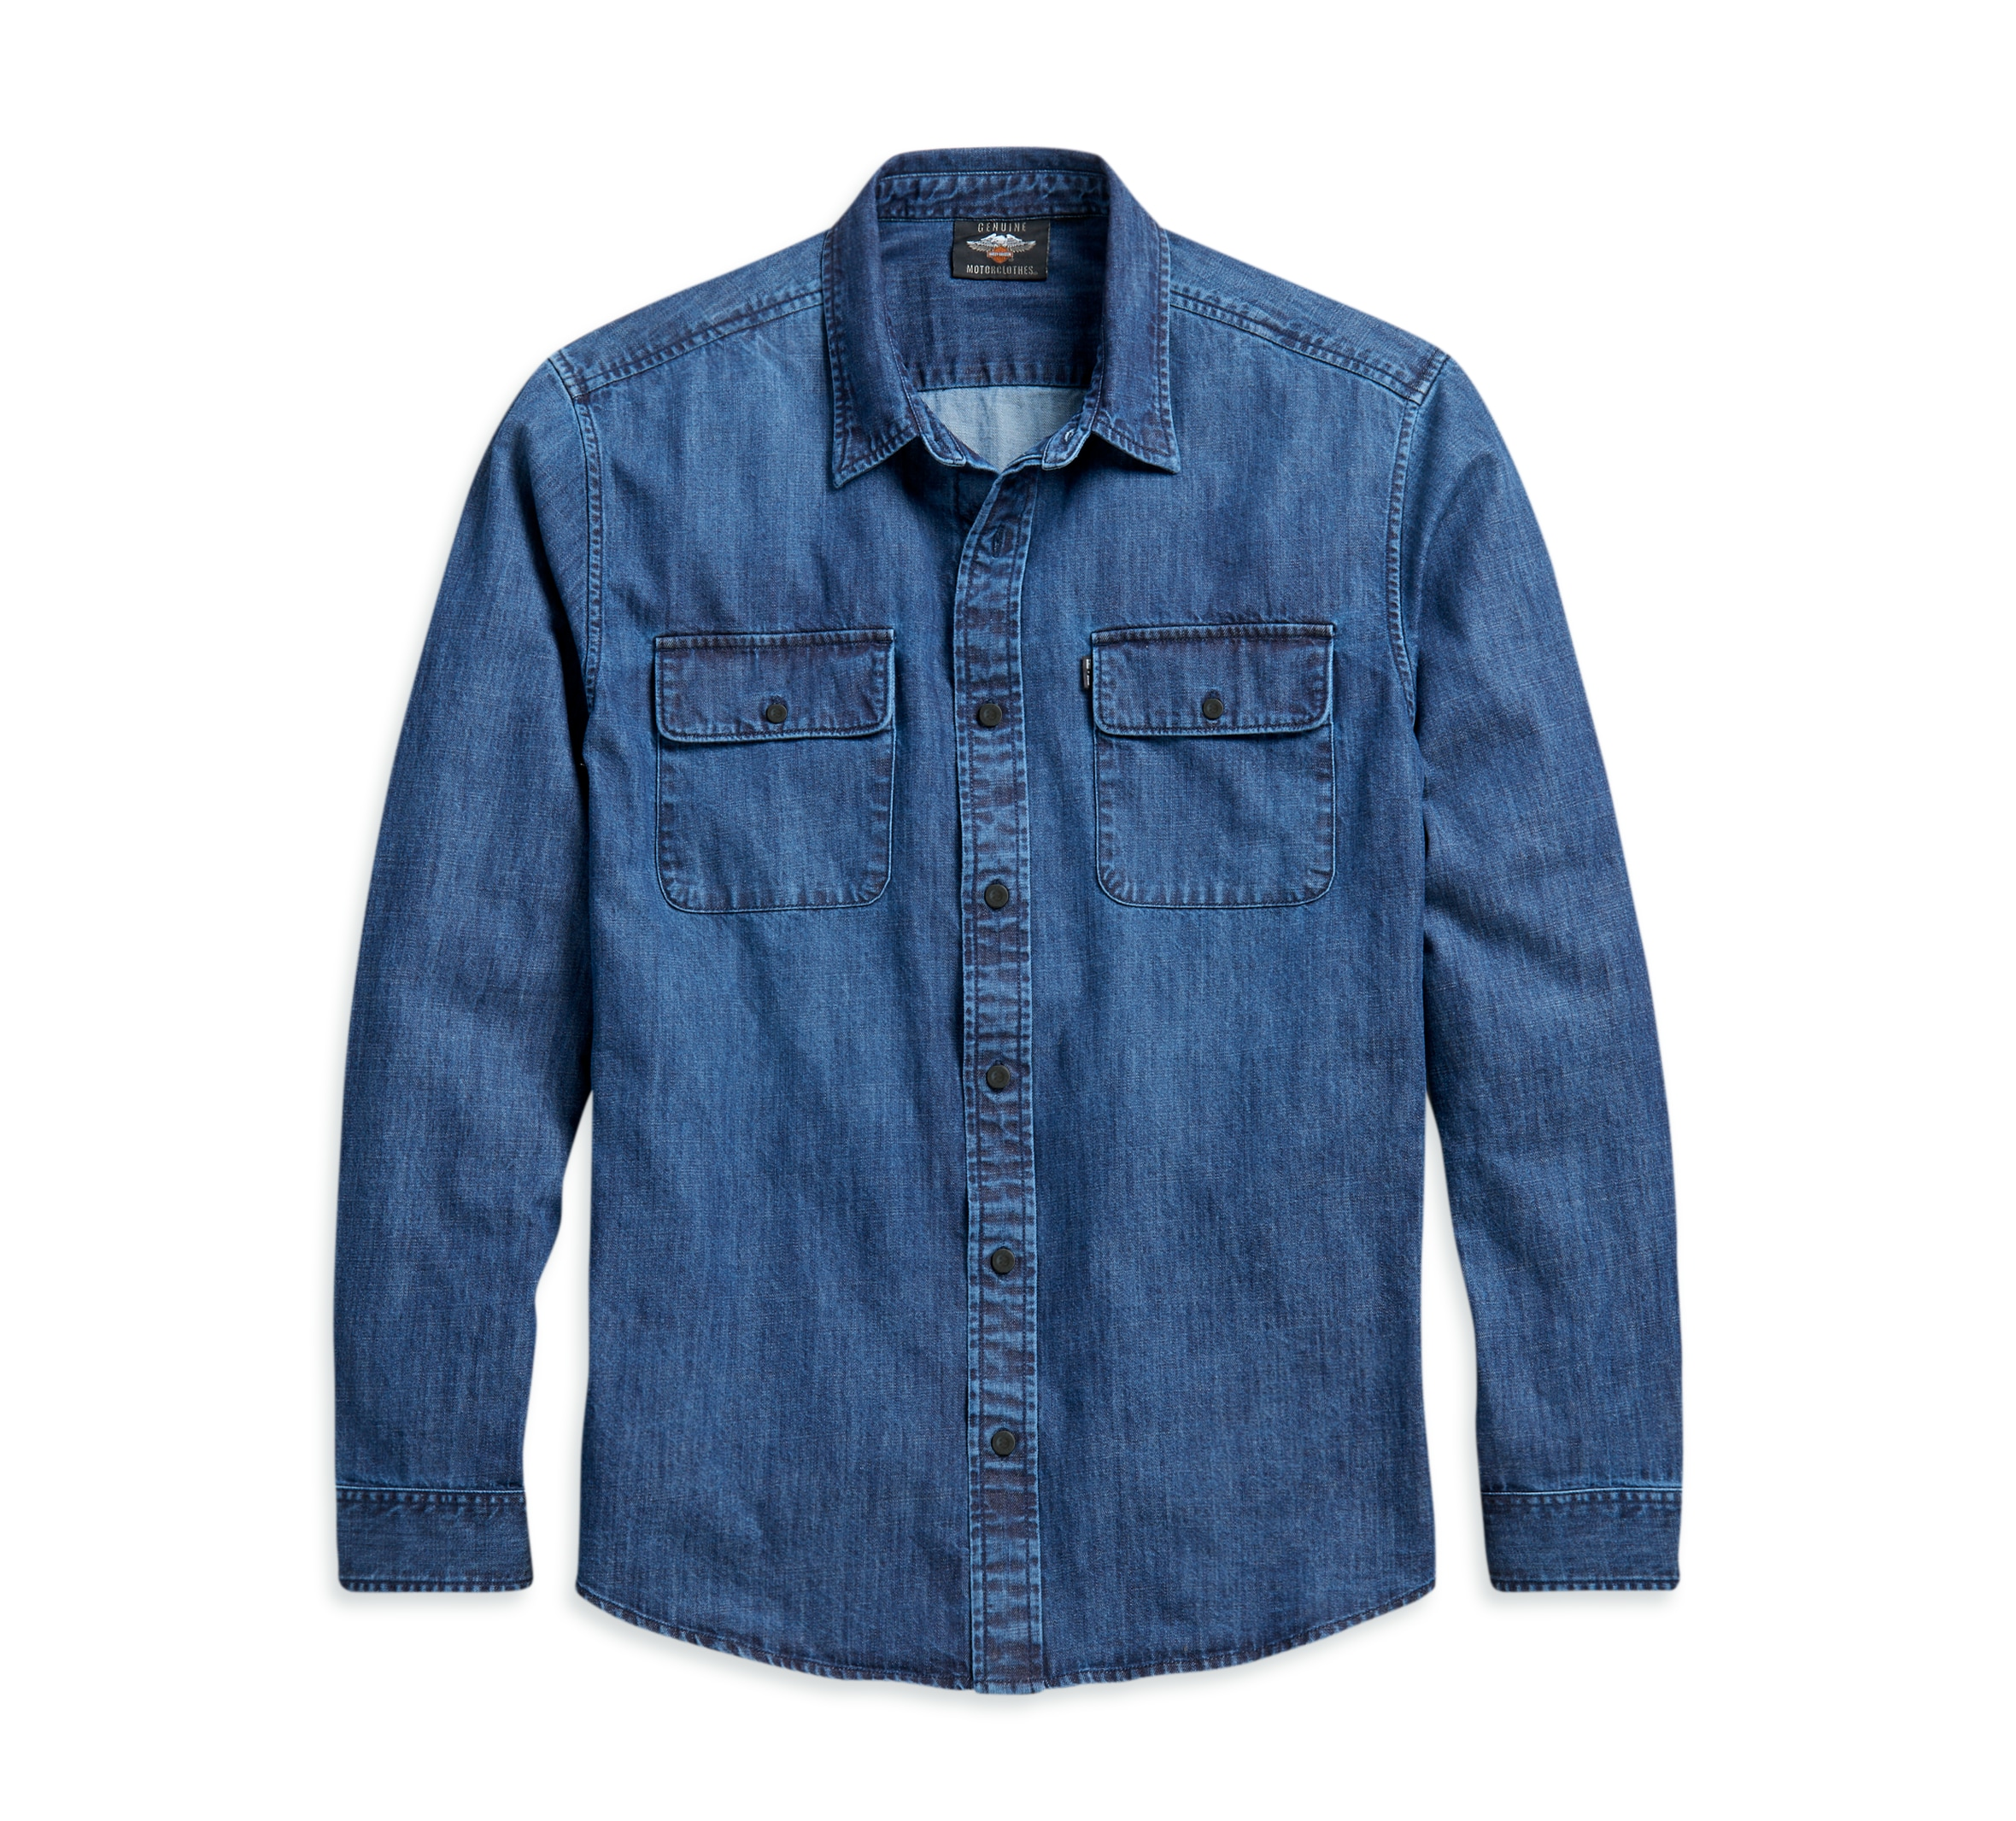 Harley-Davidson Men's Denim Shirt